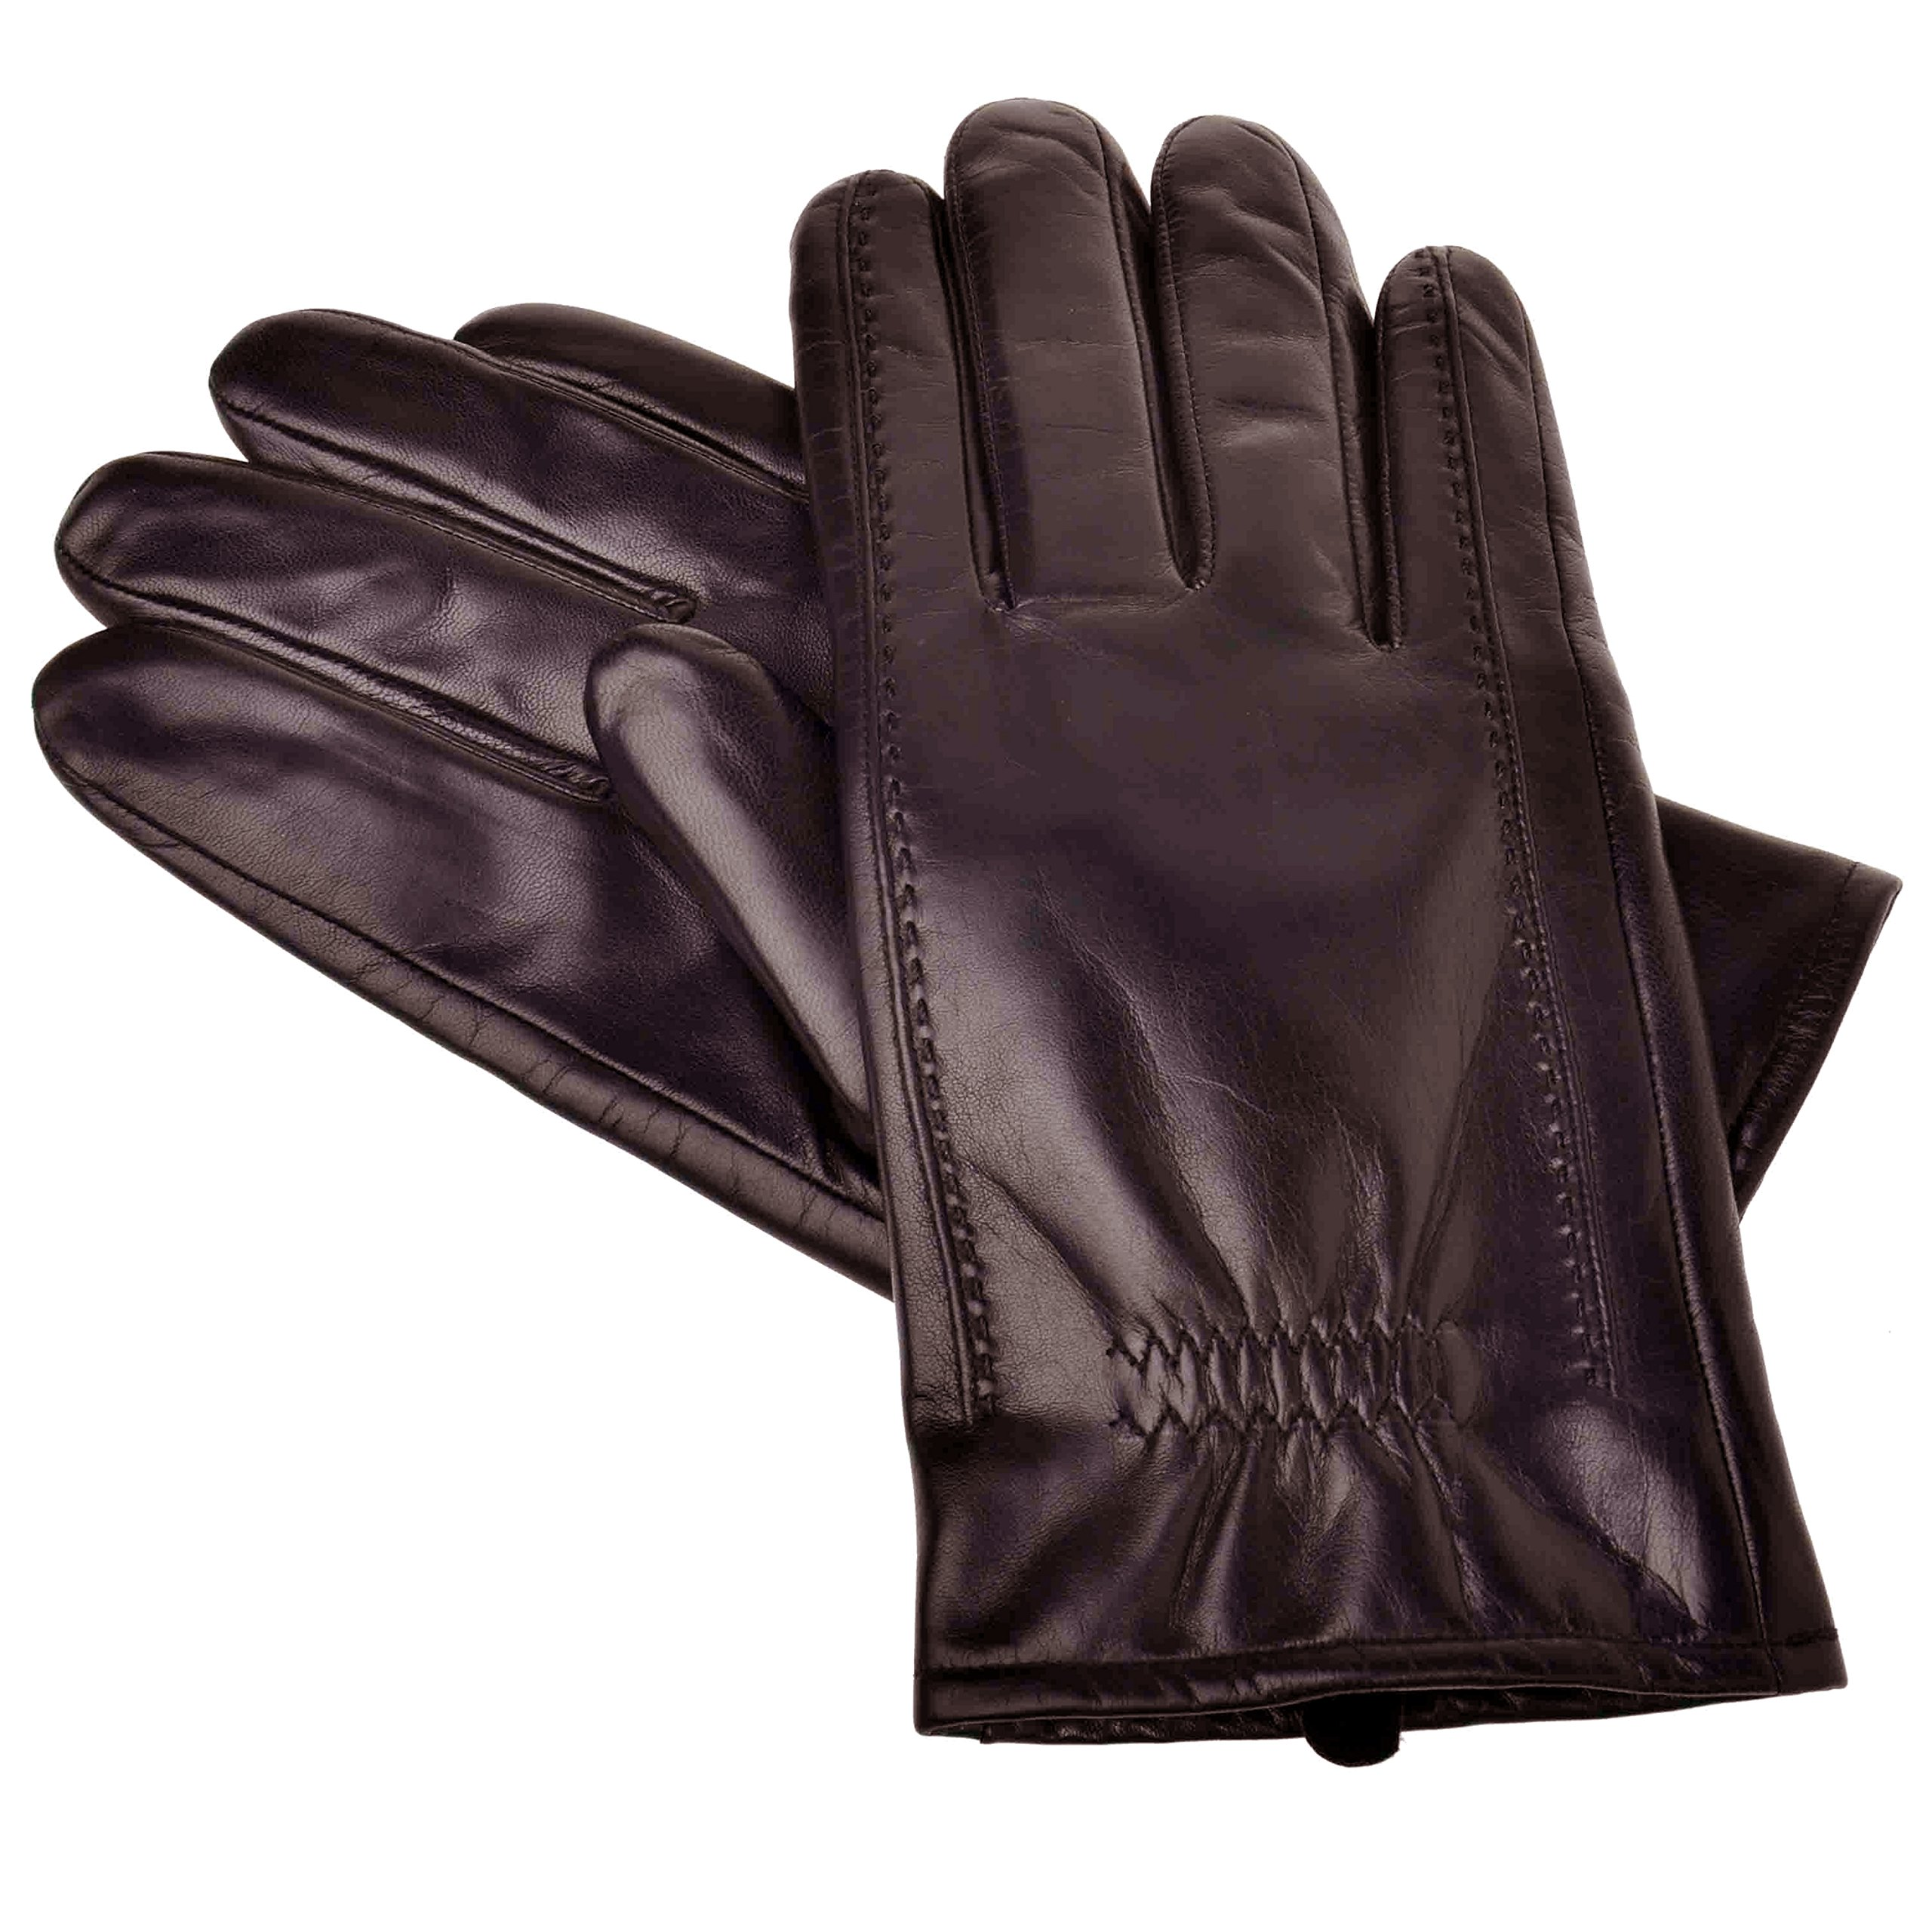 YISEVEN Men's Buttery-Soft Lambskin Leather Gloves Fleece Lined for Spring or Winter Hand Warm Fur Heated Lining Dress and Motorcycle Driving Real Luxury Stylish Holiday Xmas Gift, Brown 8.5''/Small